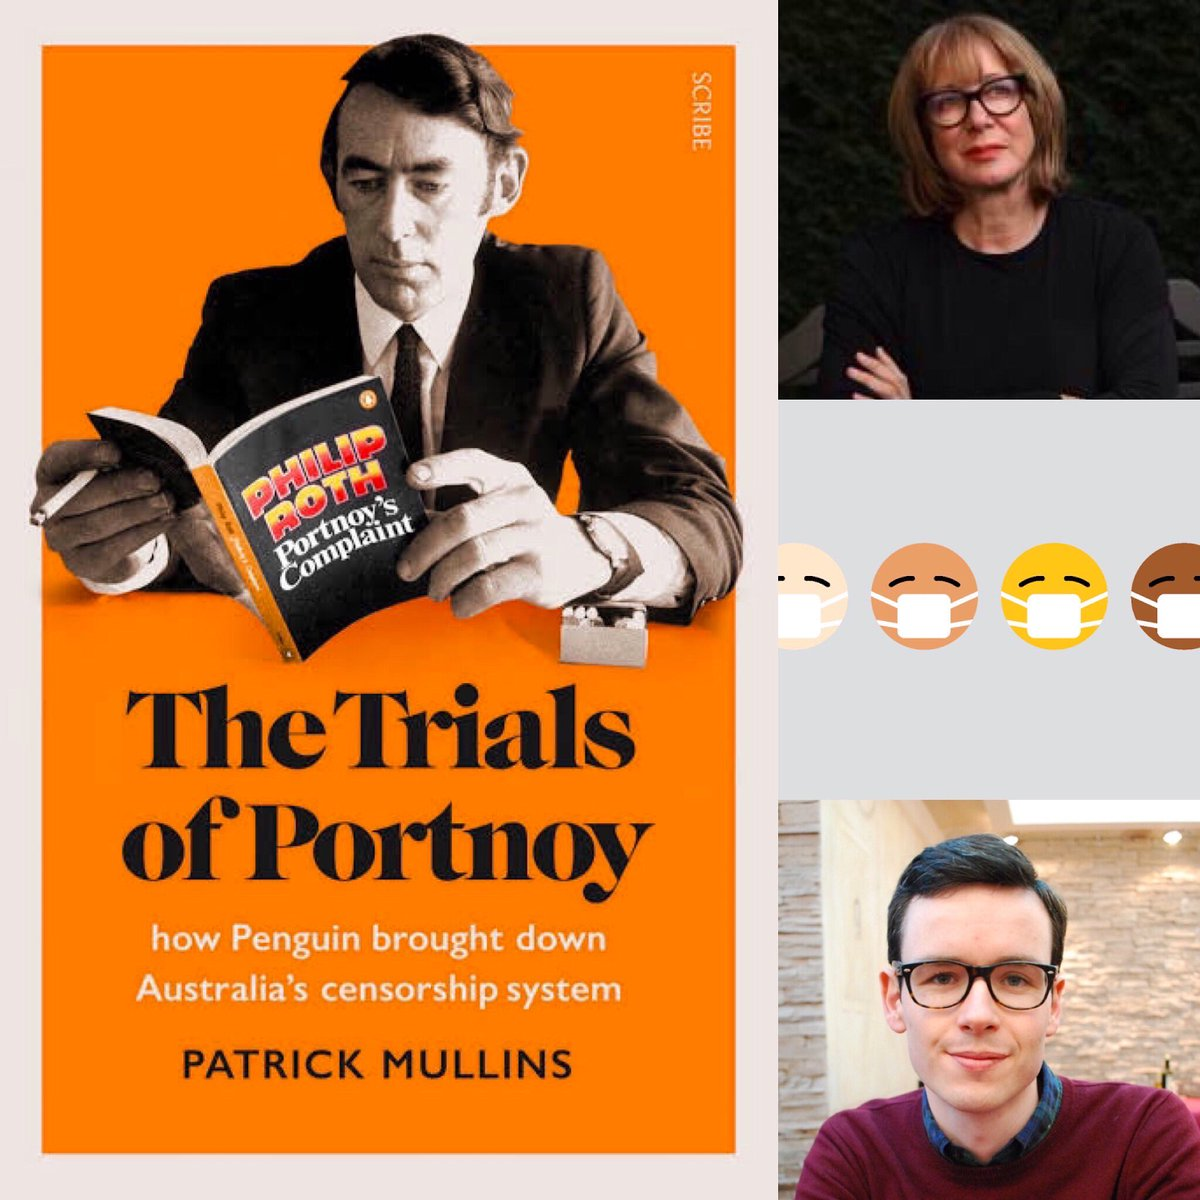 Today! Mary-Louise McLaws, epidemiologist at UNSW, delves into the issues surrounding Victoria's current rise in #coronavirus cases. @pjfmullins chats about his new book, The Trials of Portnoy: how Penguin brought down Australia's #censorship system. Plus @beneltham on #auspol